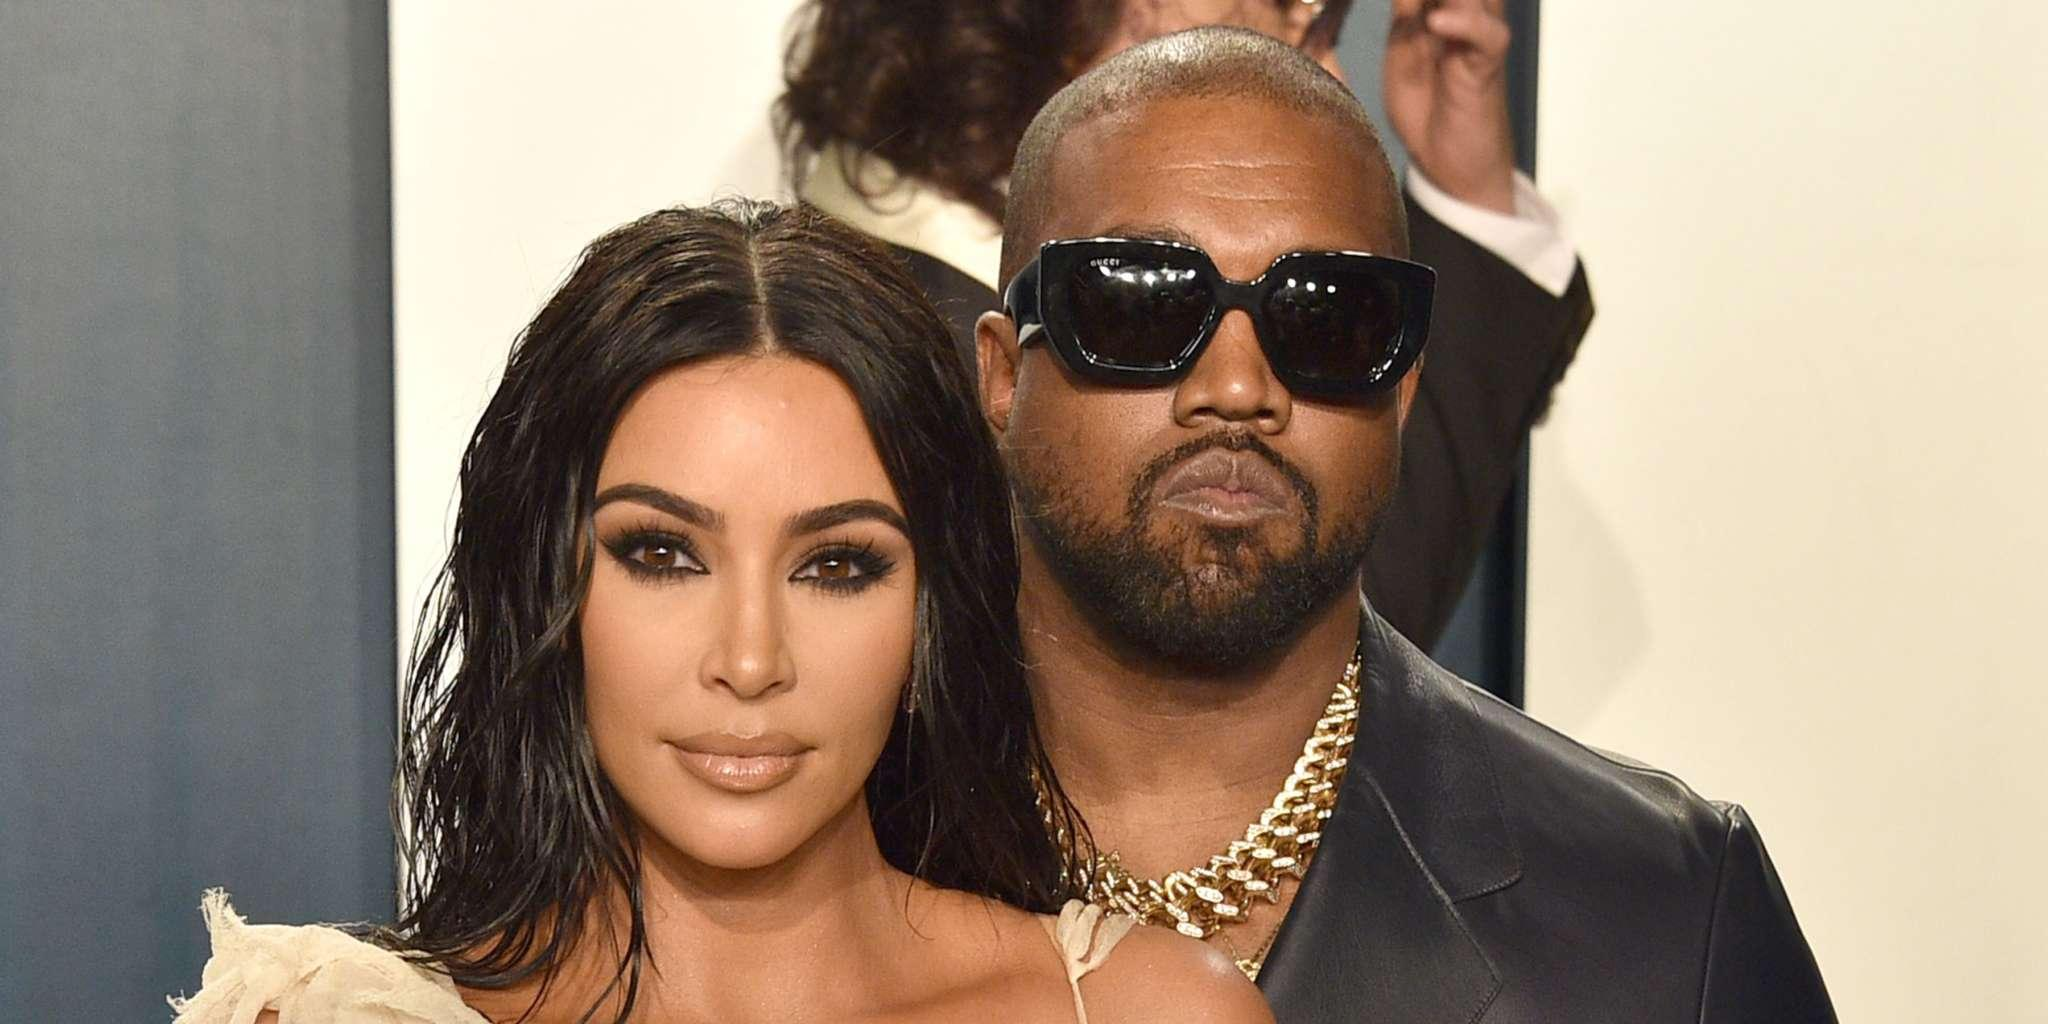 KUWTK: Kim Kardashian Trying Her Best To Help Kanye West In Private - Here's How!